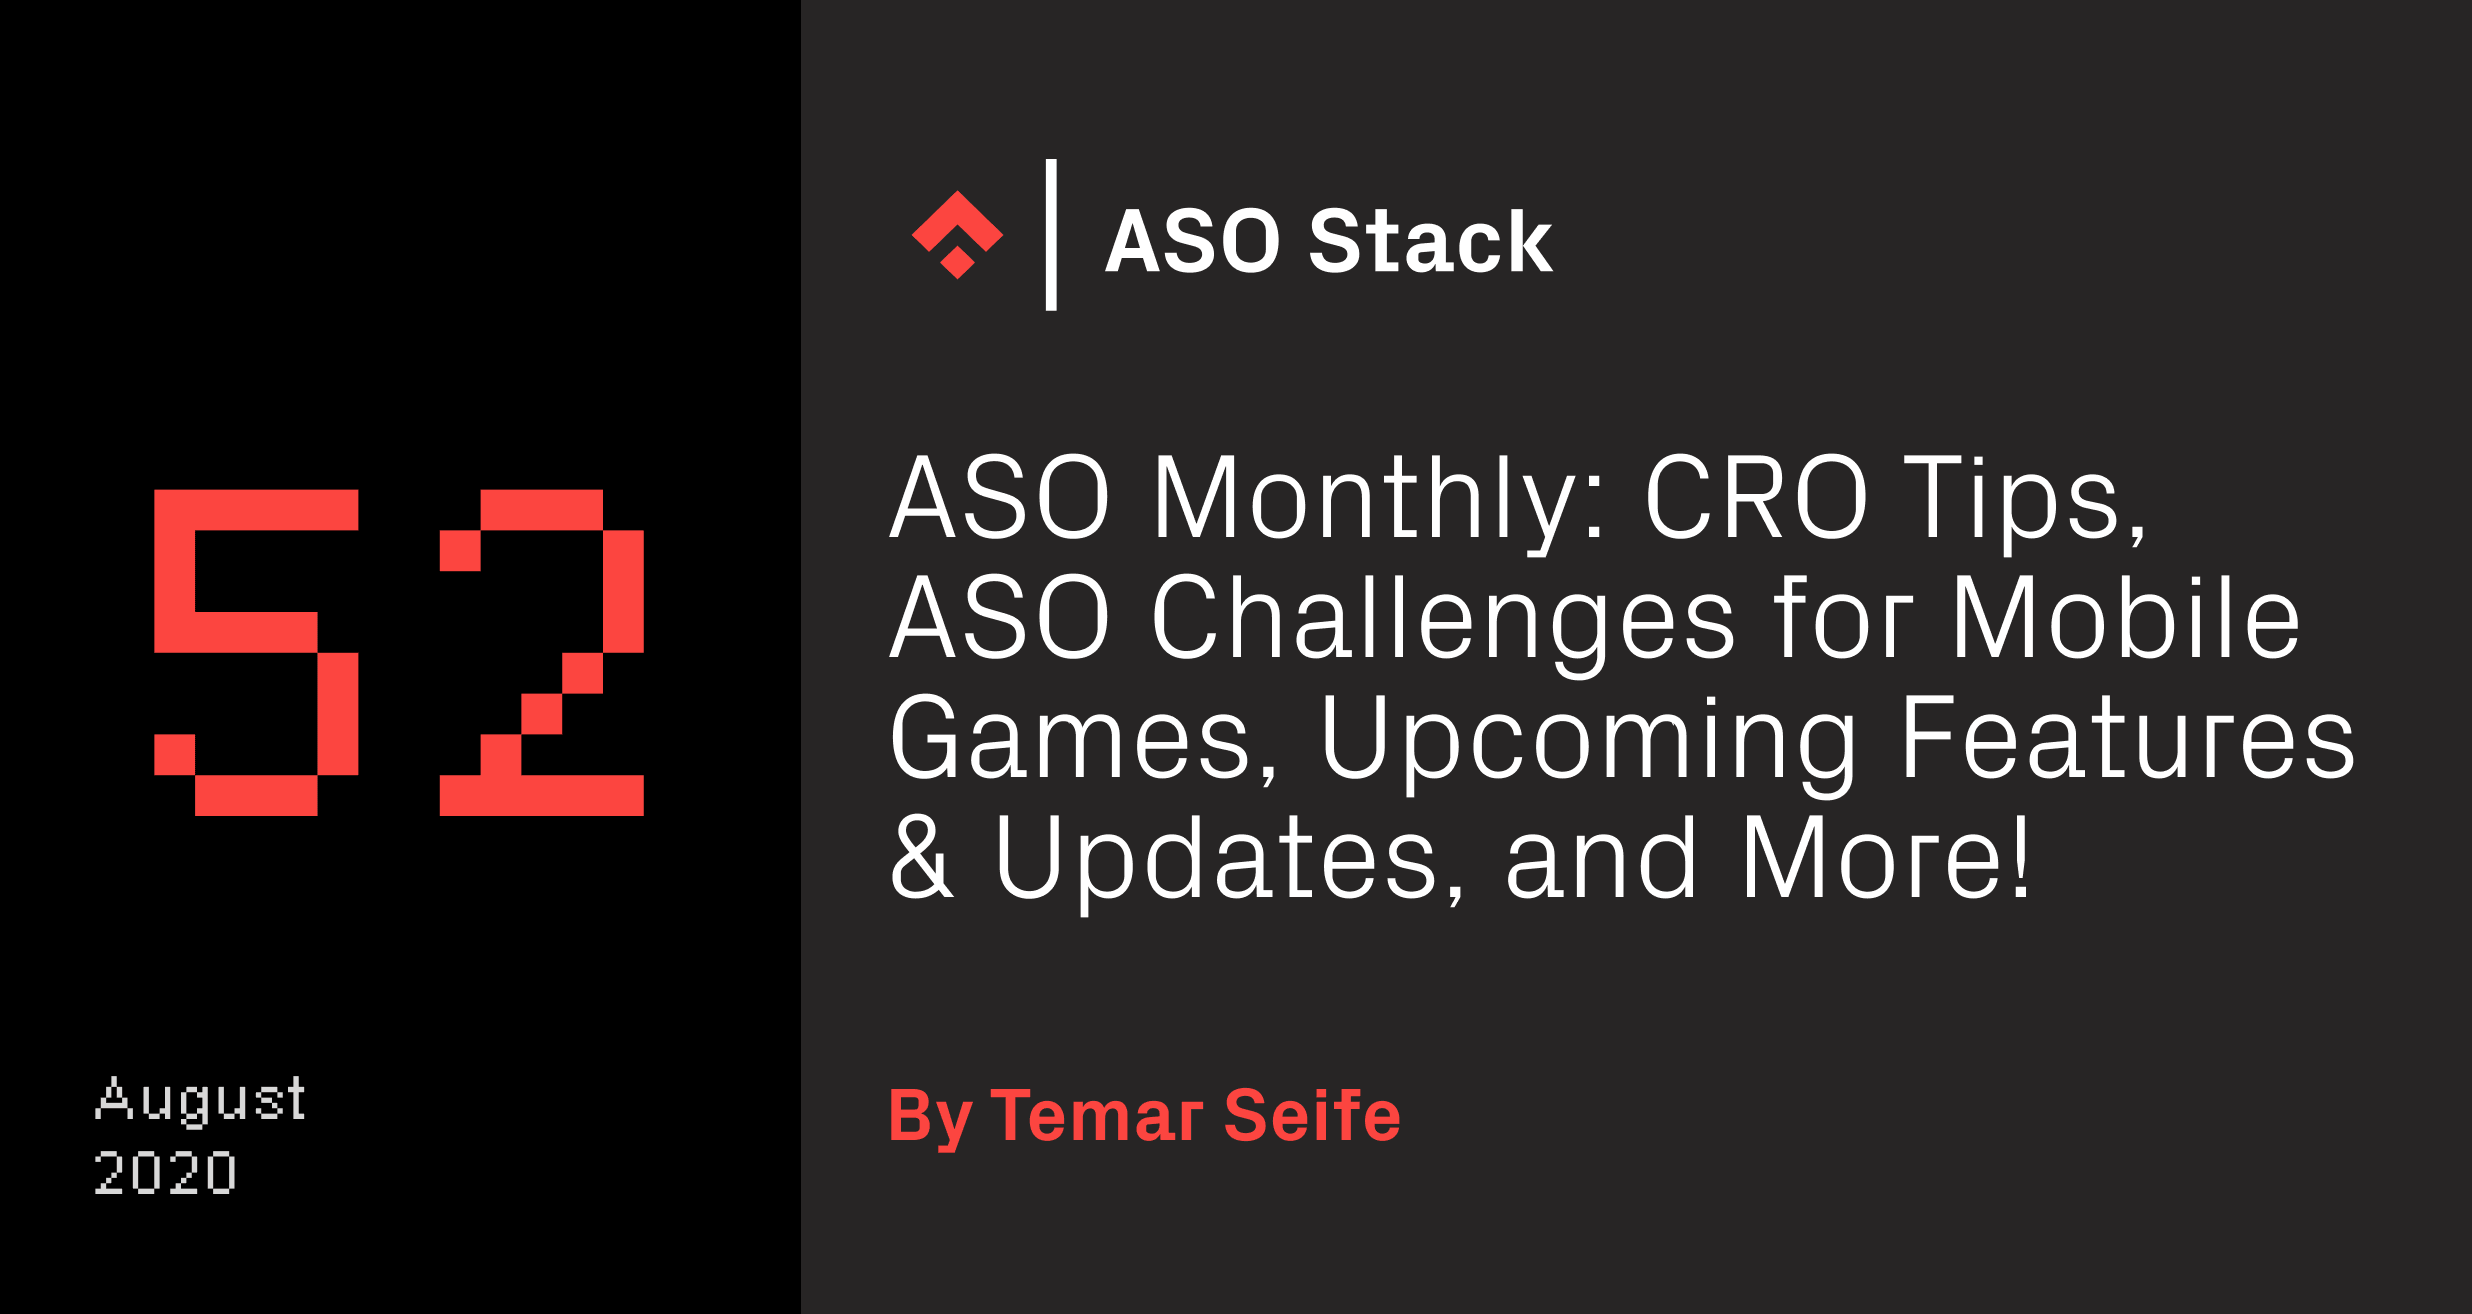 aso monthly 52 august 2020